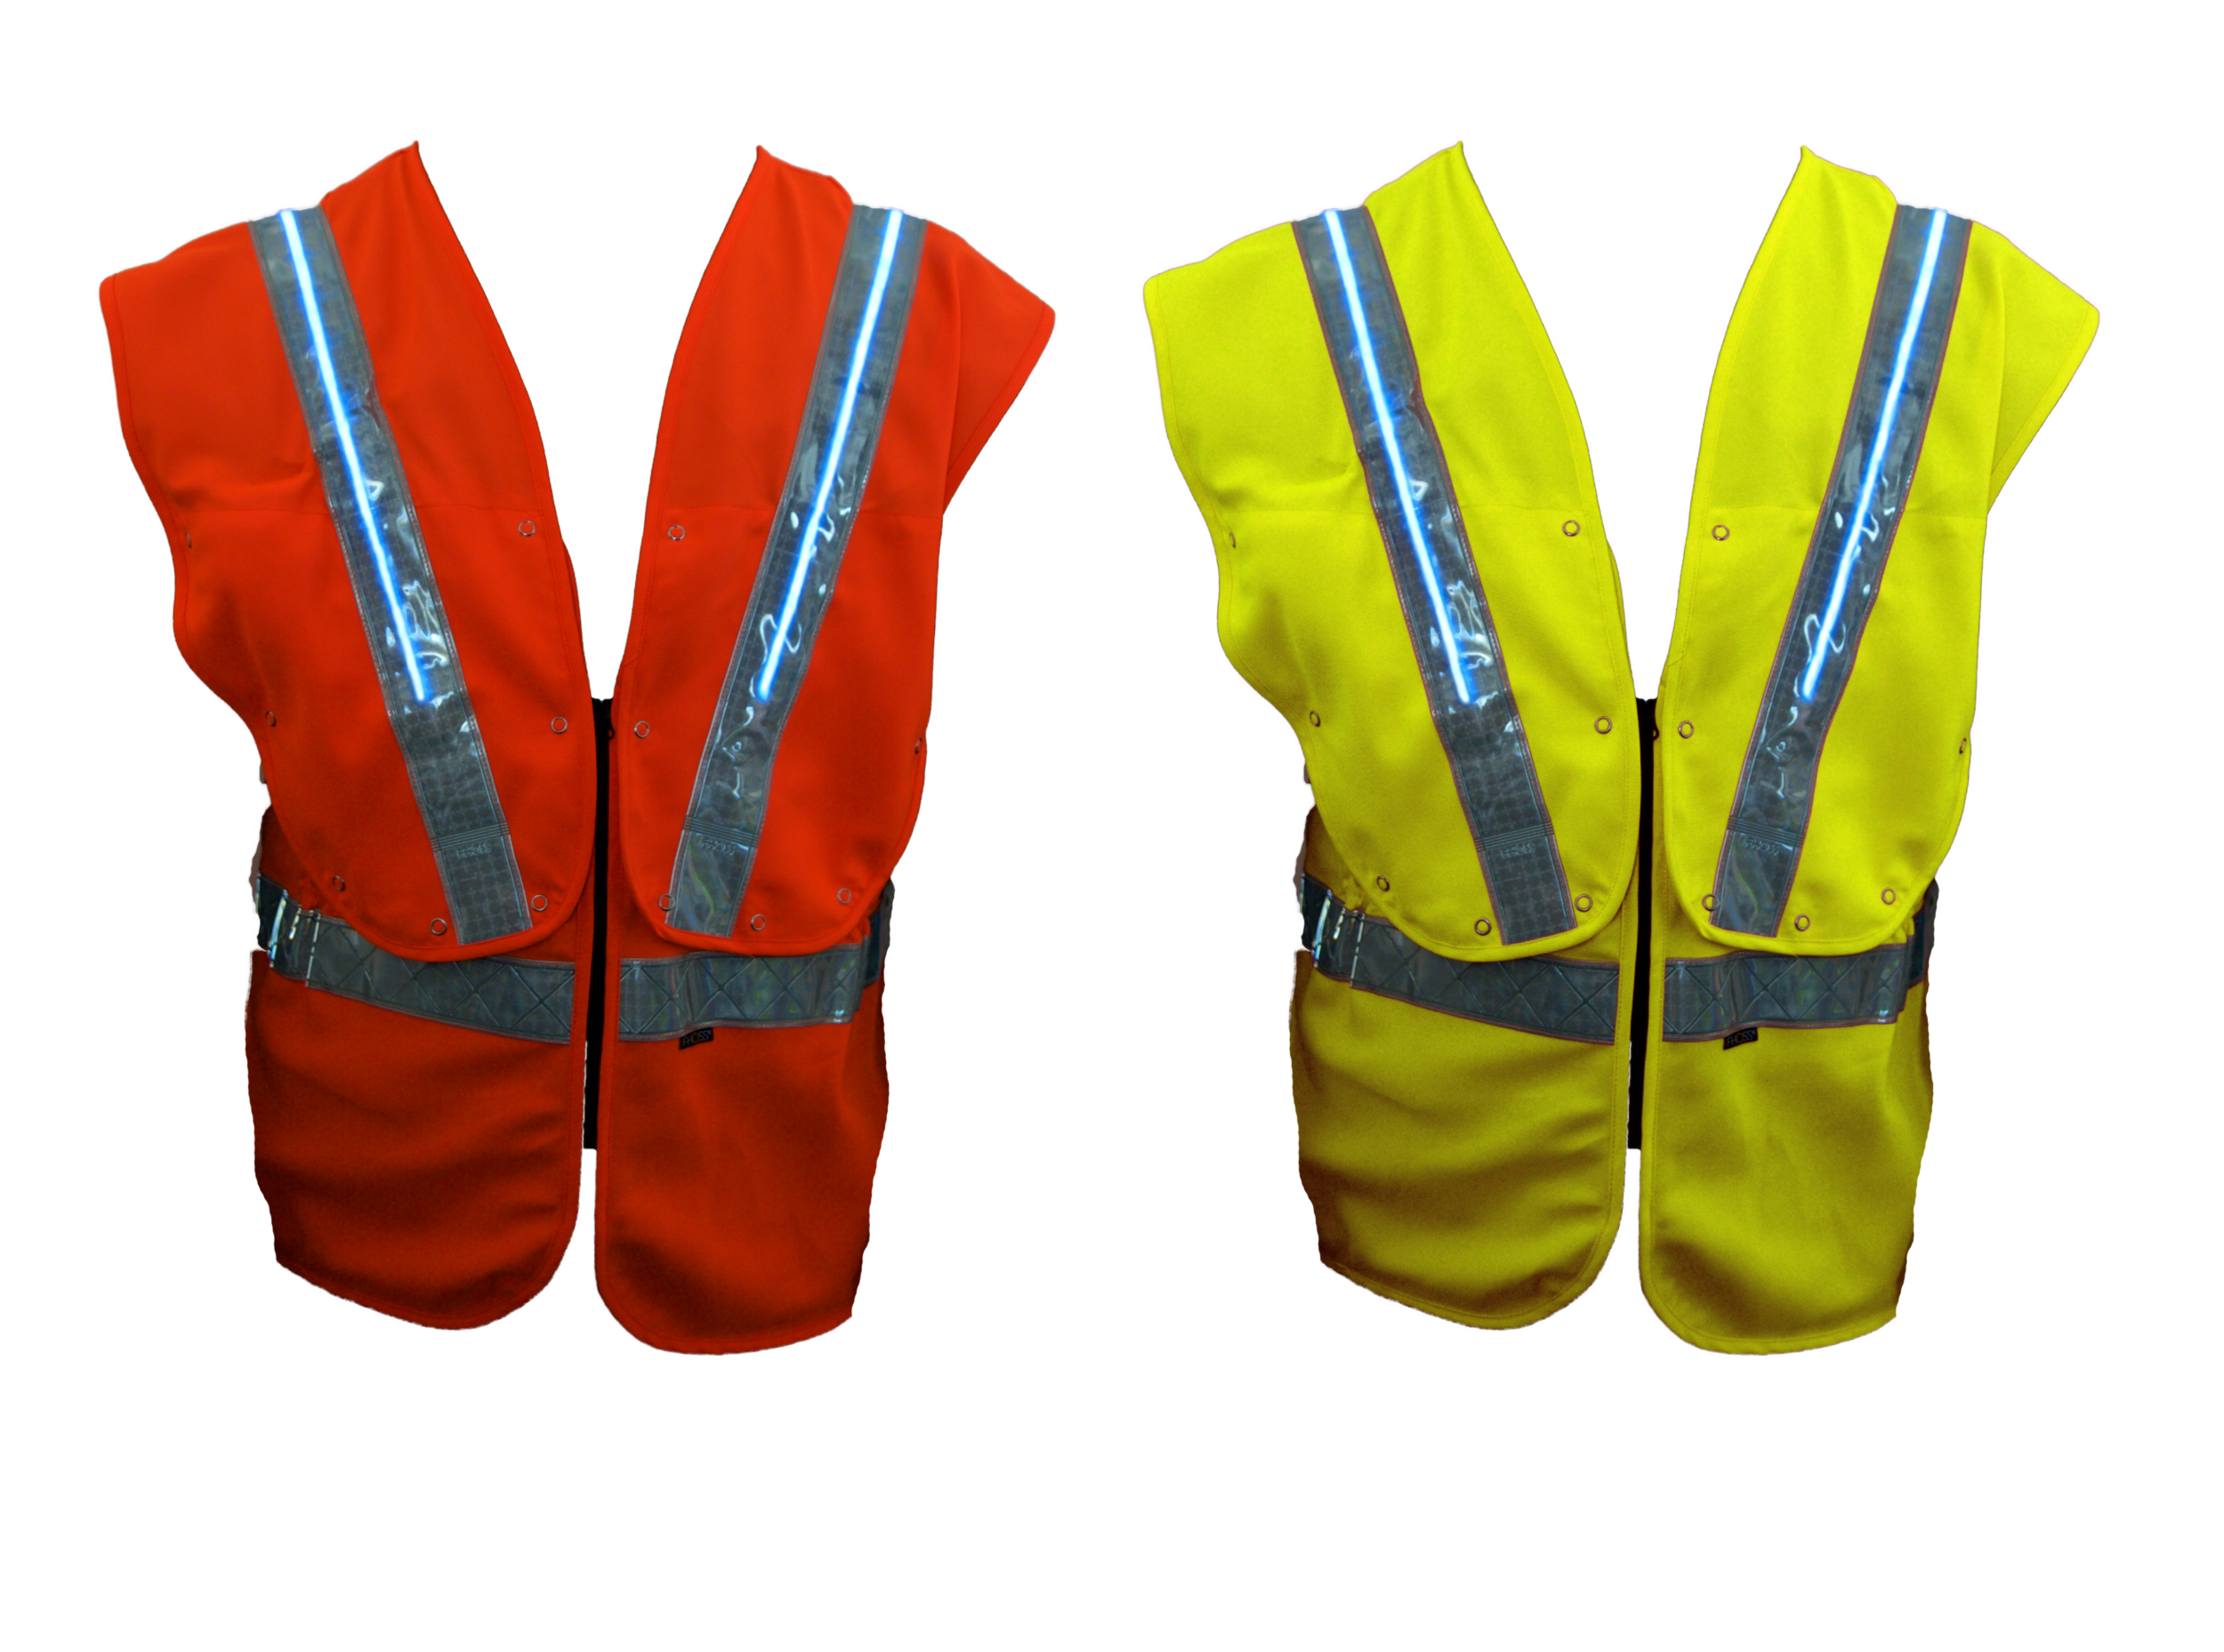 FiContego Anti-Entanglement Safety Vest   100% Polyester • Water resistant • Adjustable waist • Anti Entanglement feature • Comfort shoulder design • Sealed Fhoss illuminated strip • Colour options: Yellow & Orange   Test Criteria /  EN ISO 20471:2013 • ANSI / ISEA 107 • CSA Z96:02/09 • GO/RT3279 • IP 67 Connector